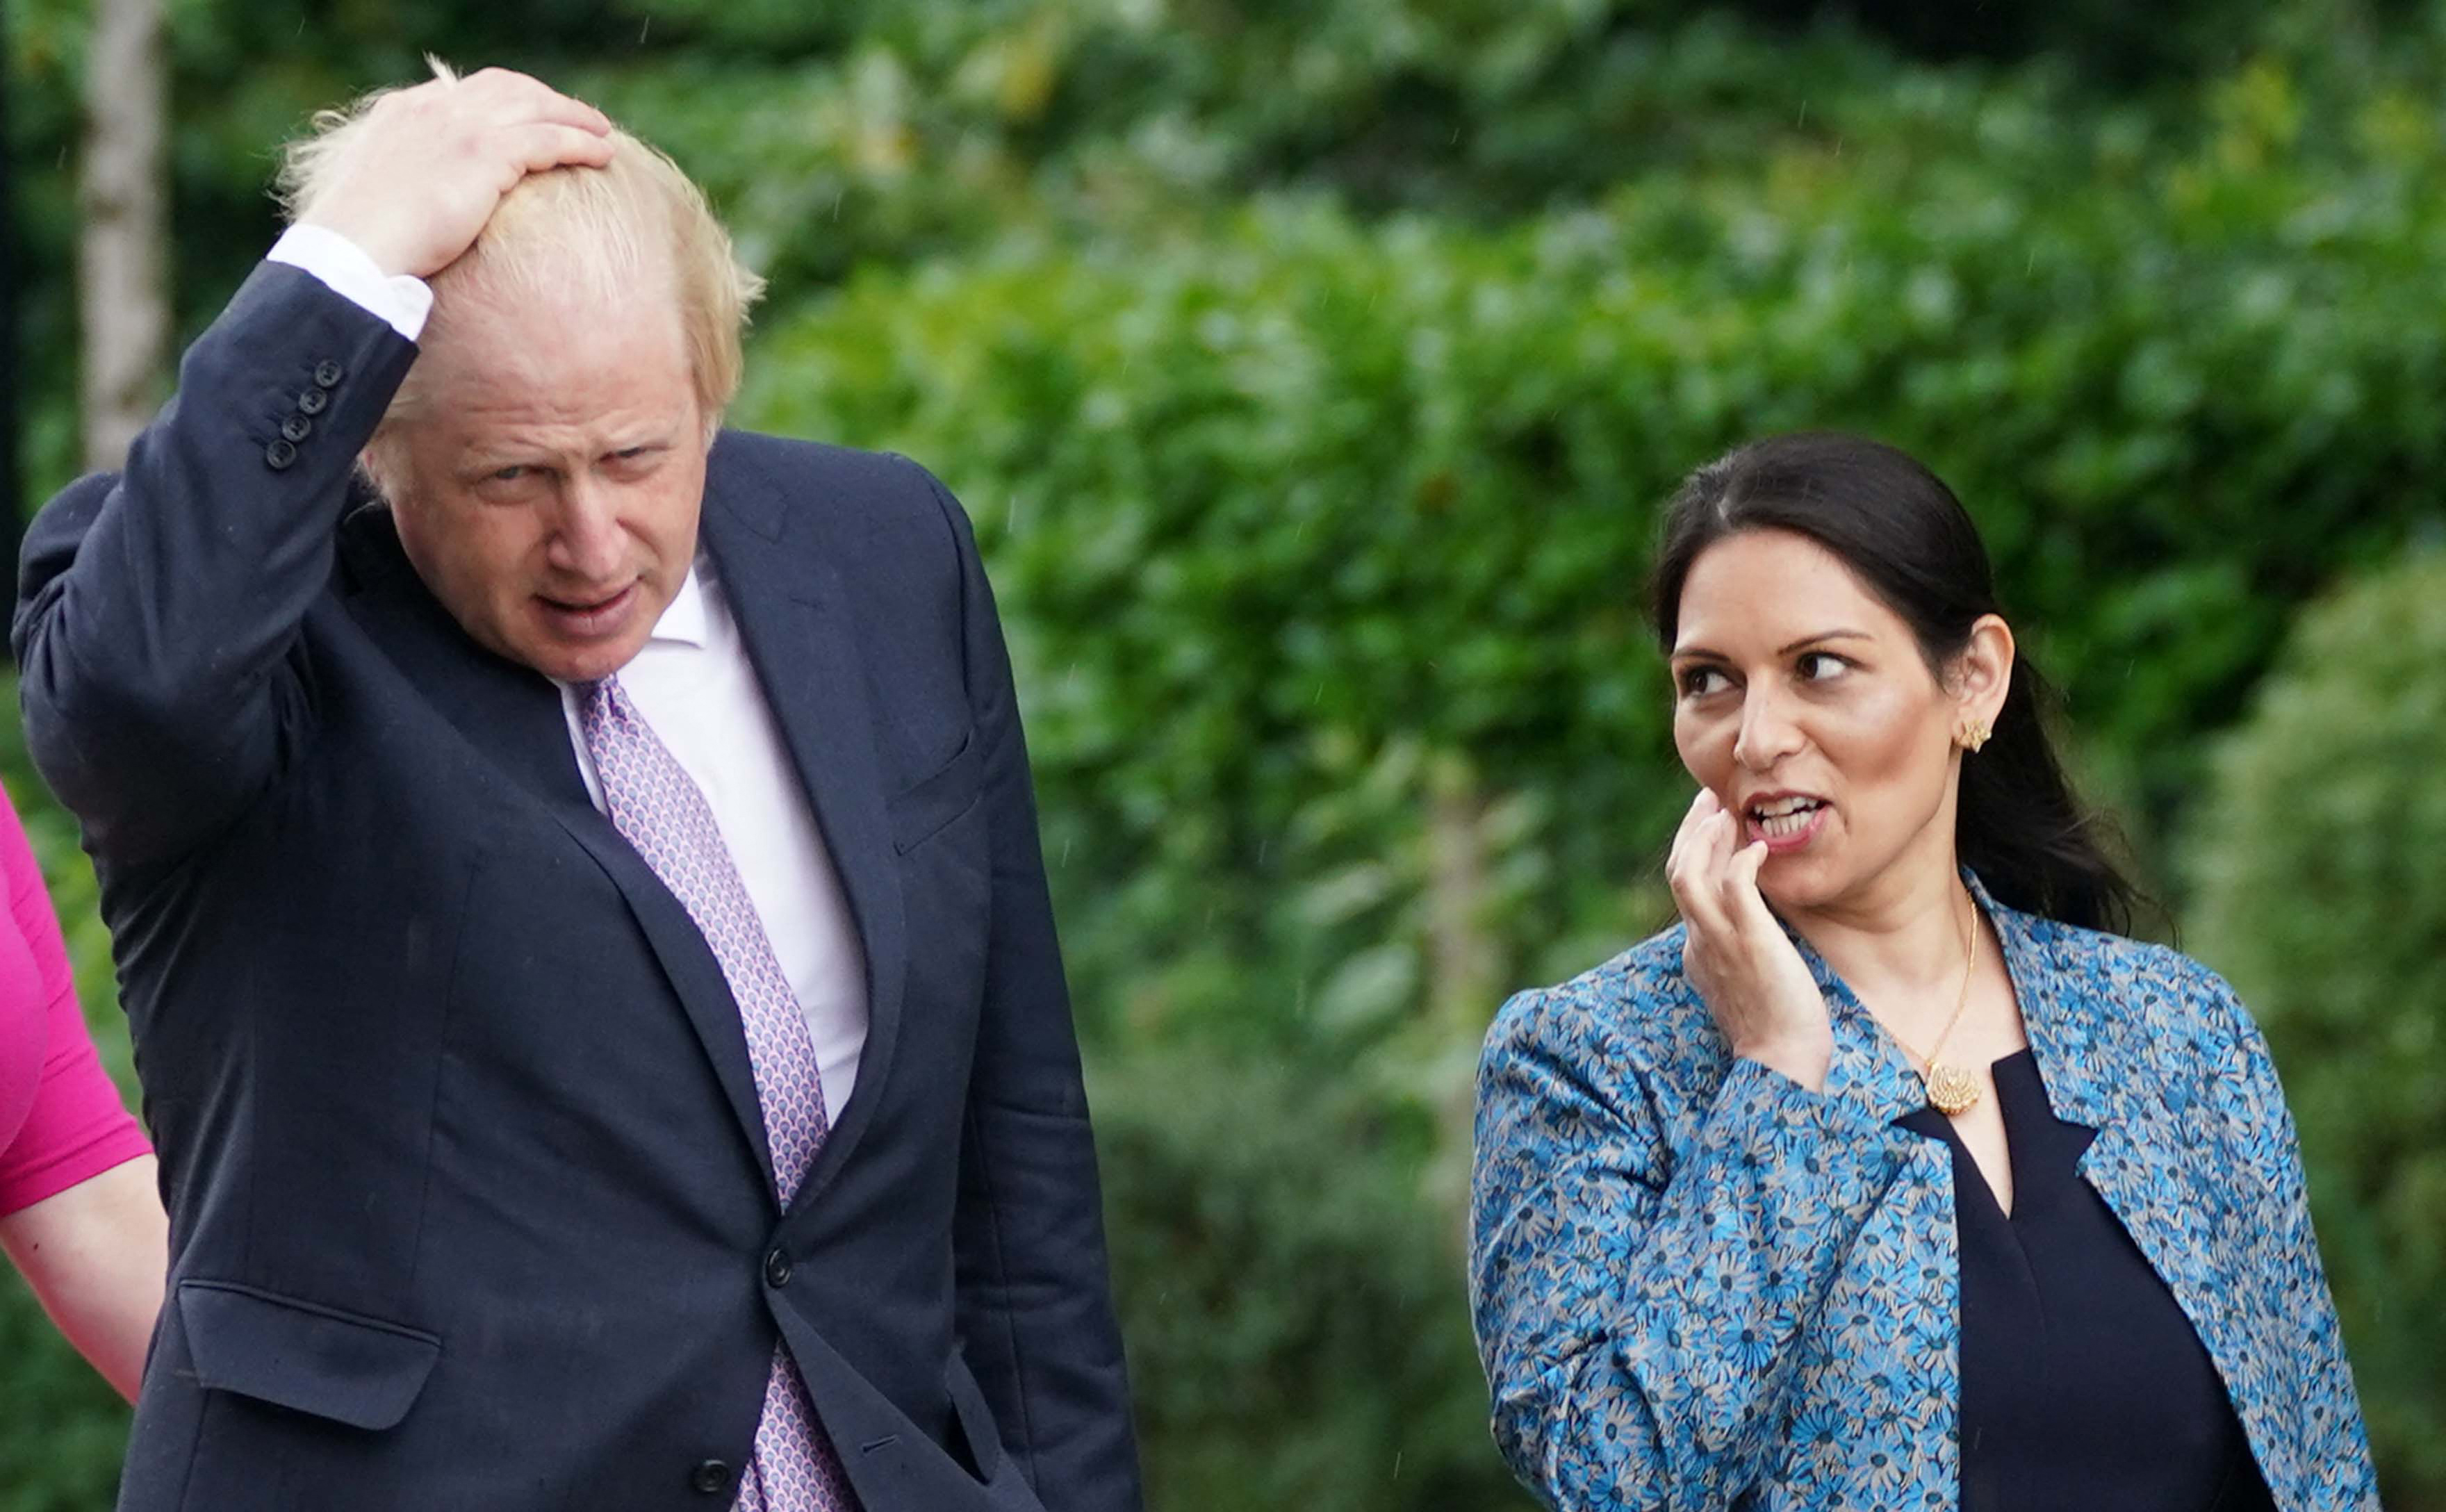 <p>Britain's Prime Minister Boris Johnson (L) and Britain's Home Secretary Priti Patel (R) visit to Surrey Police headquarters in Guildford, south west of London, on July 27, 2021 to coincide with the publication of the government's plans to tackle crime. (Photo by Yui Mok / POOL / AFP) (Photo by YUI MOK/POOL/AFP via Getty Images)</p>